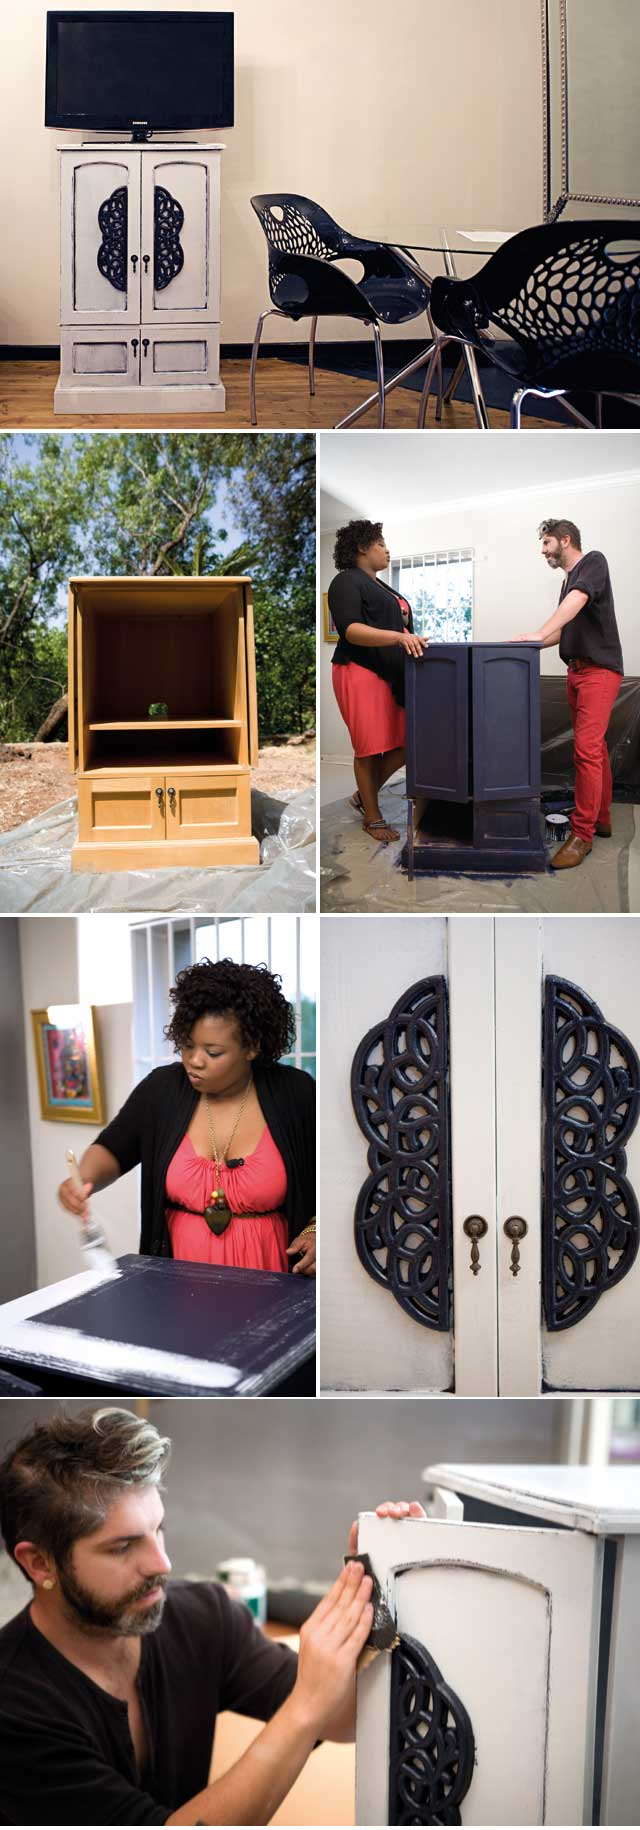 Top Billing brings you decor ideas with a DIY cupboard makeover